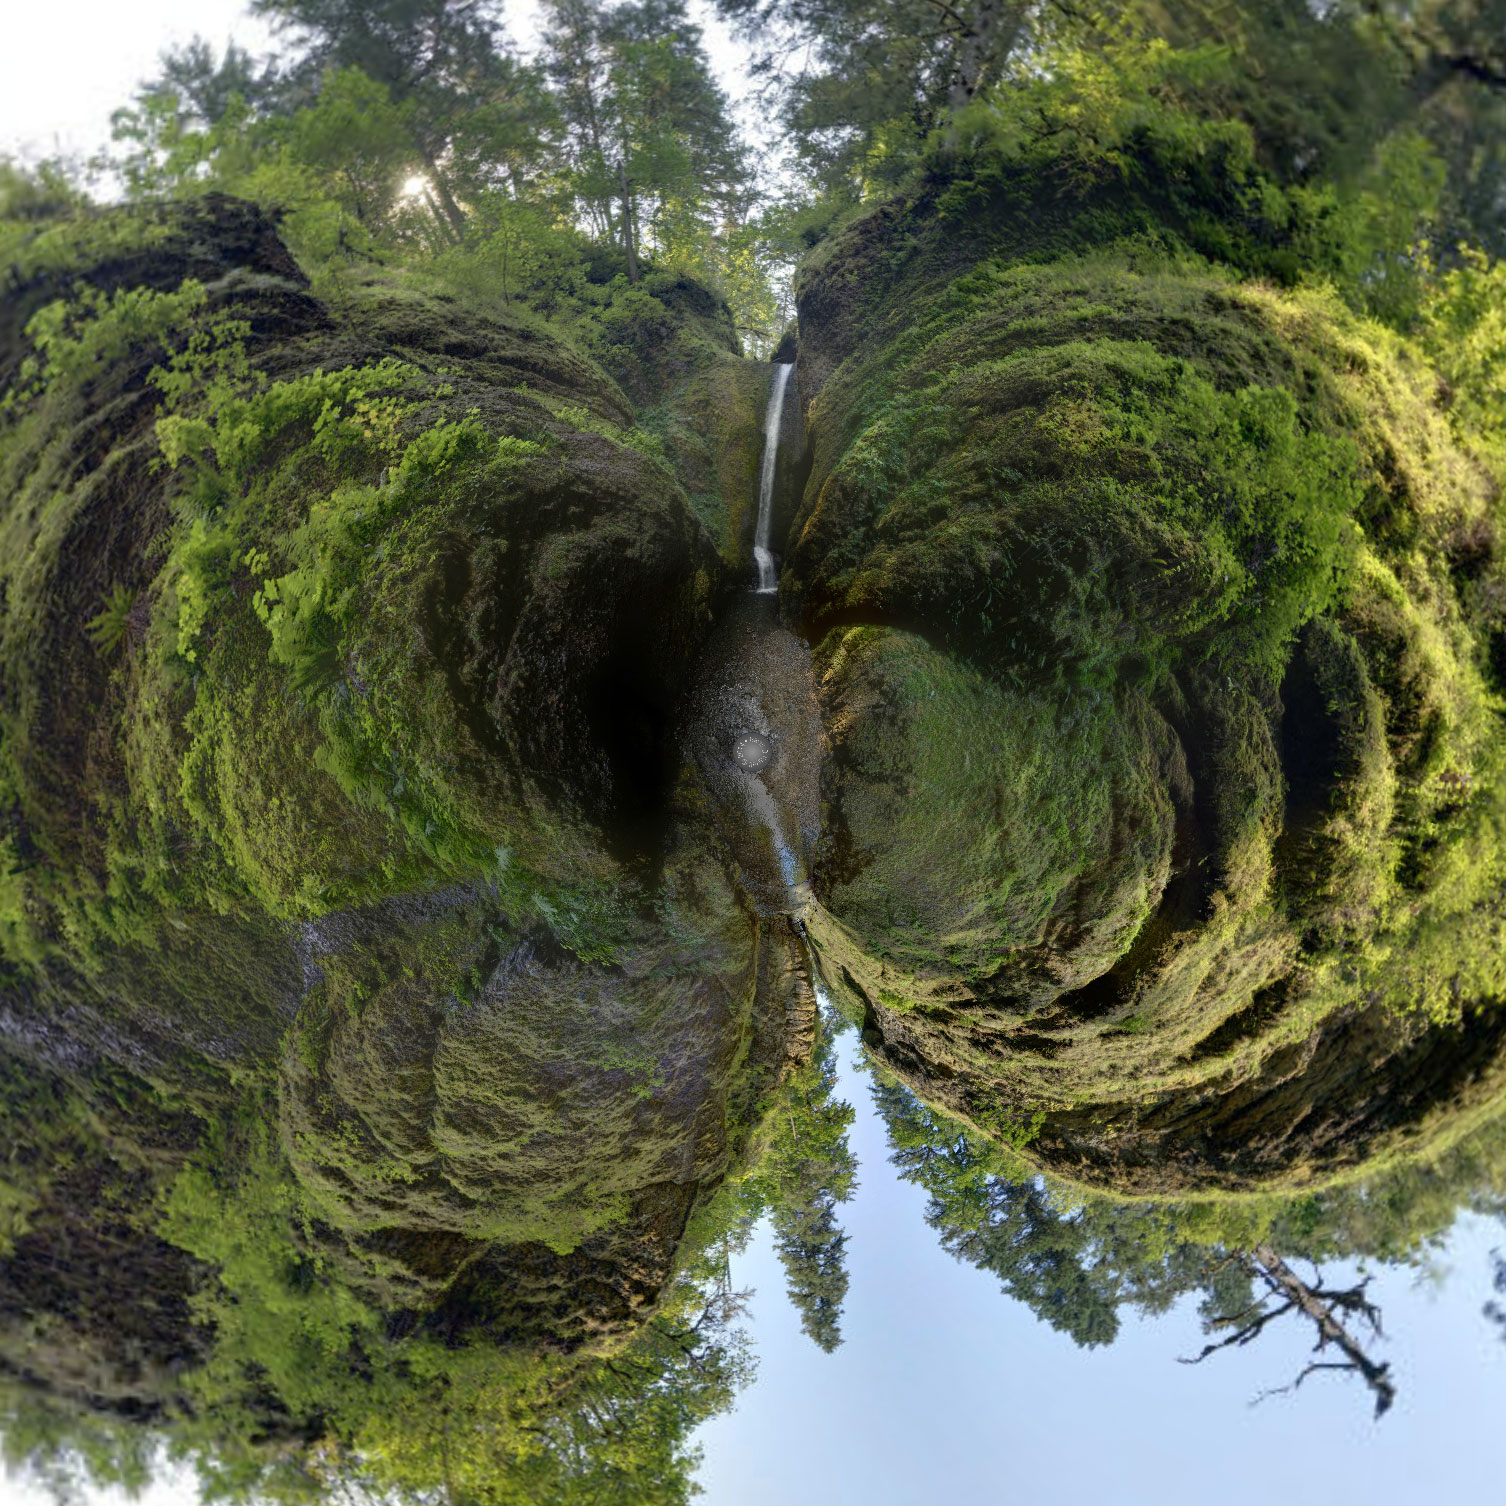 Oneonta Falls at Oneonta Gorge, Elevated 360° Sphere